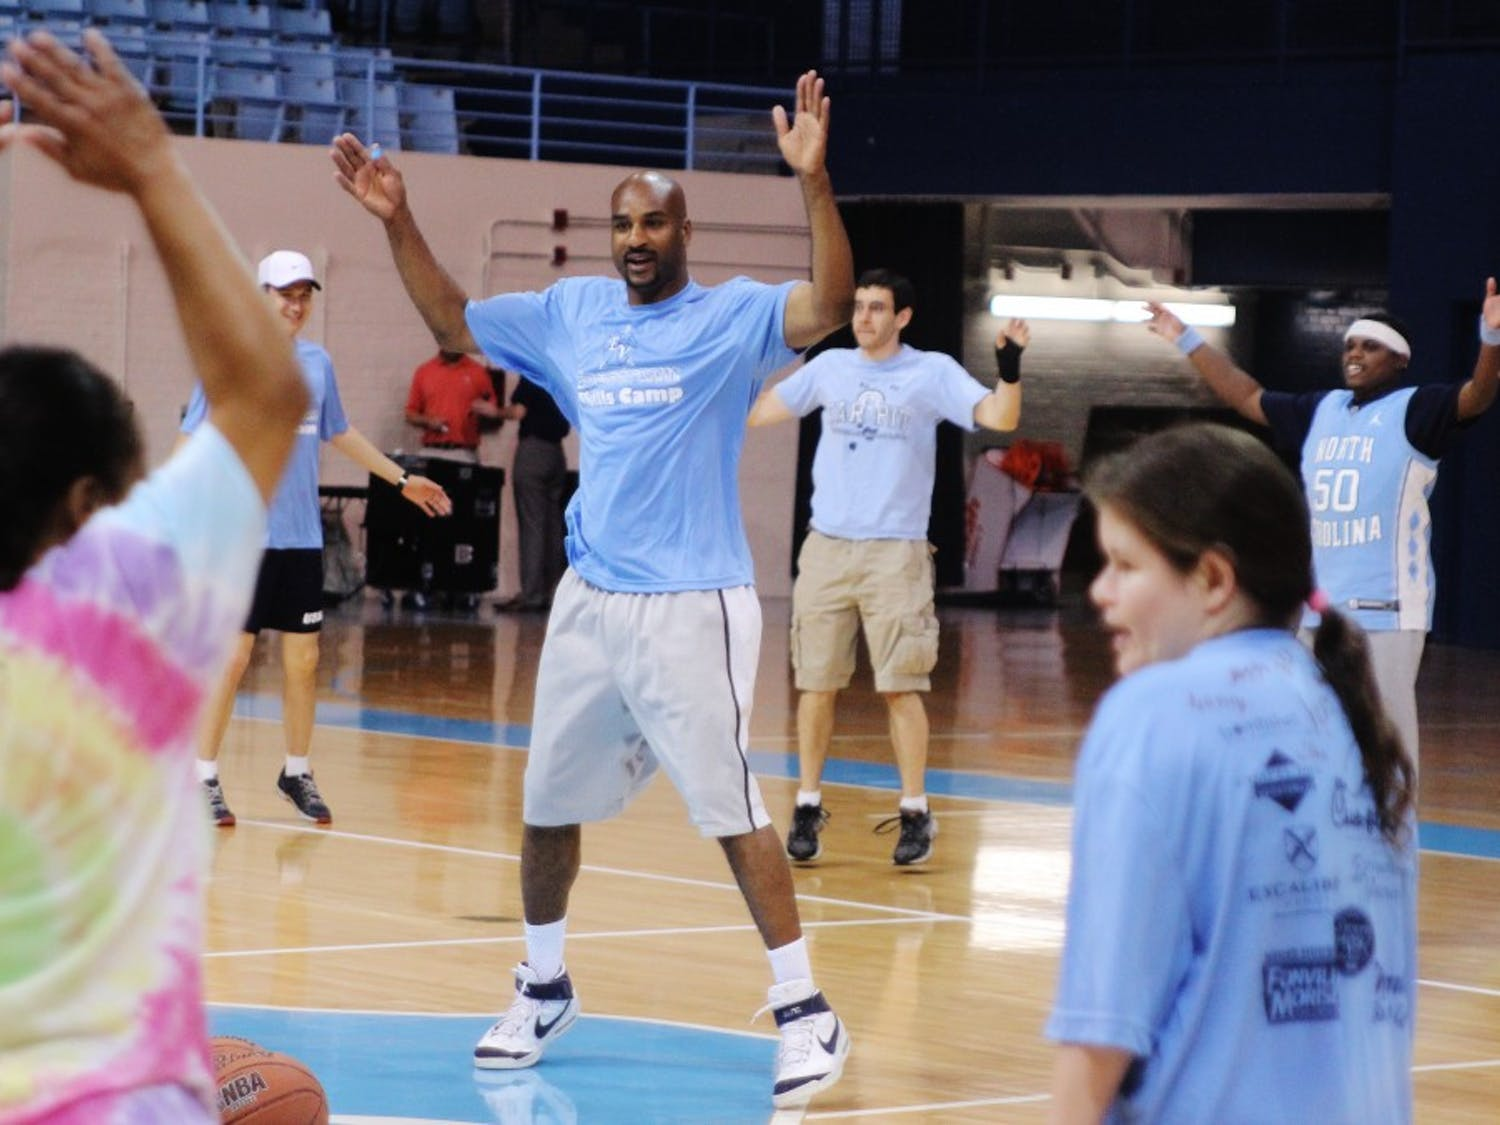 Basketball game for autistic kids at Carmichael ArenaIn the center, Roger Hudson, a Tar Heel volunteer who studied Political Policy and graduated in 1996, is leading the kids for some warm-up exercises.